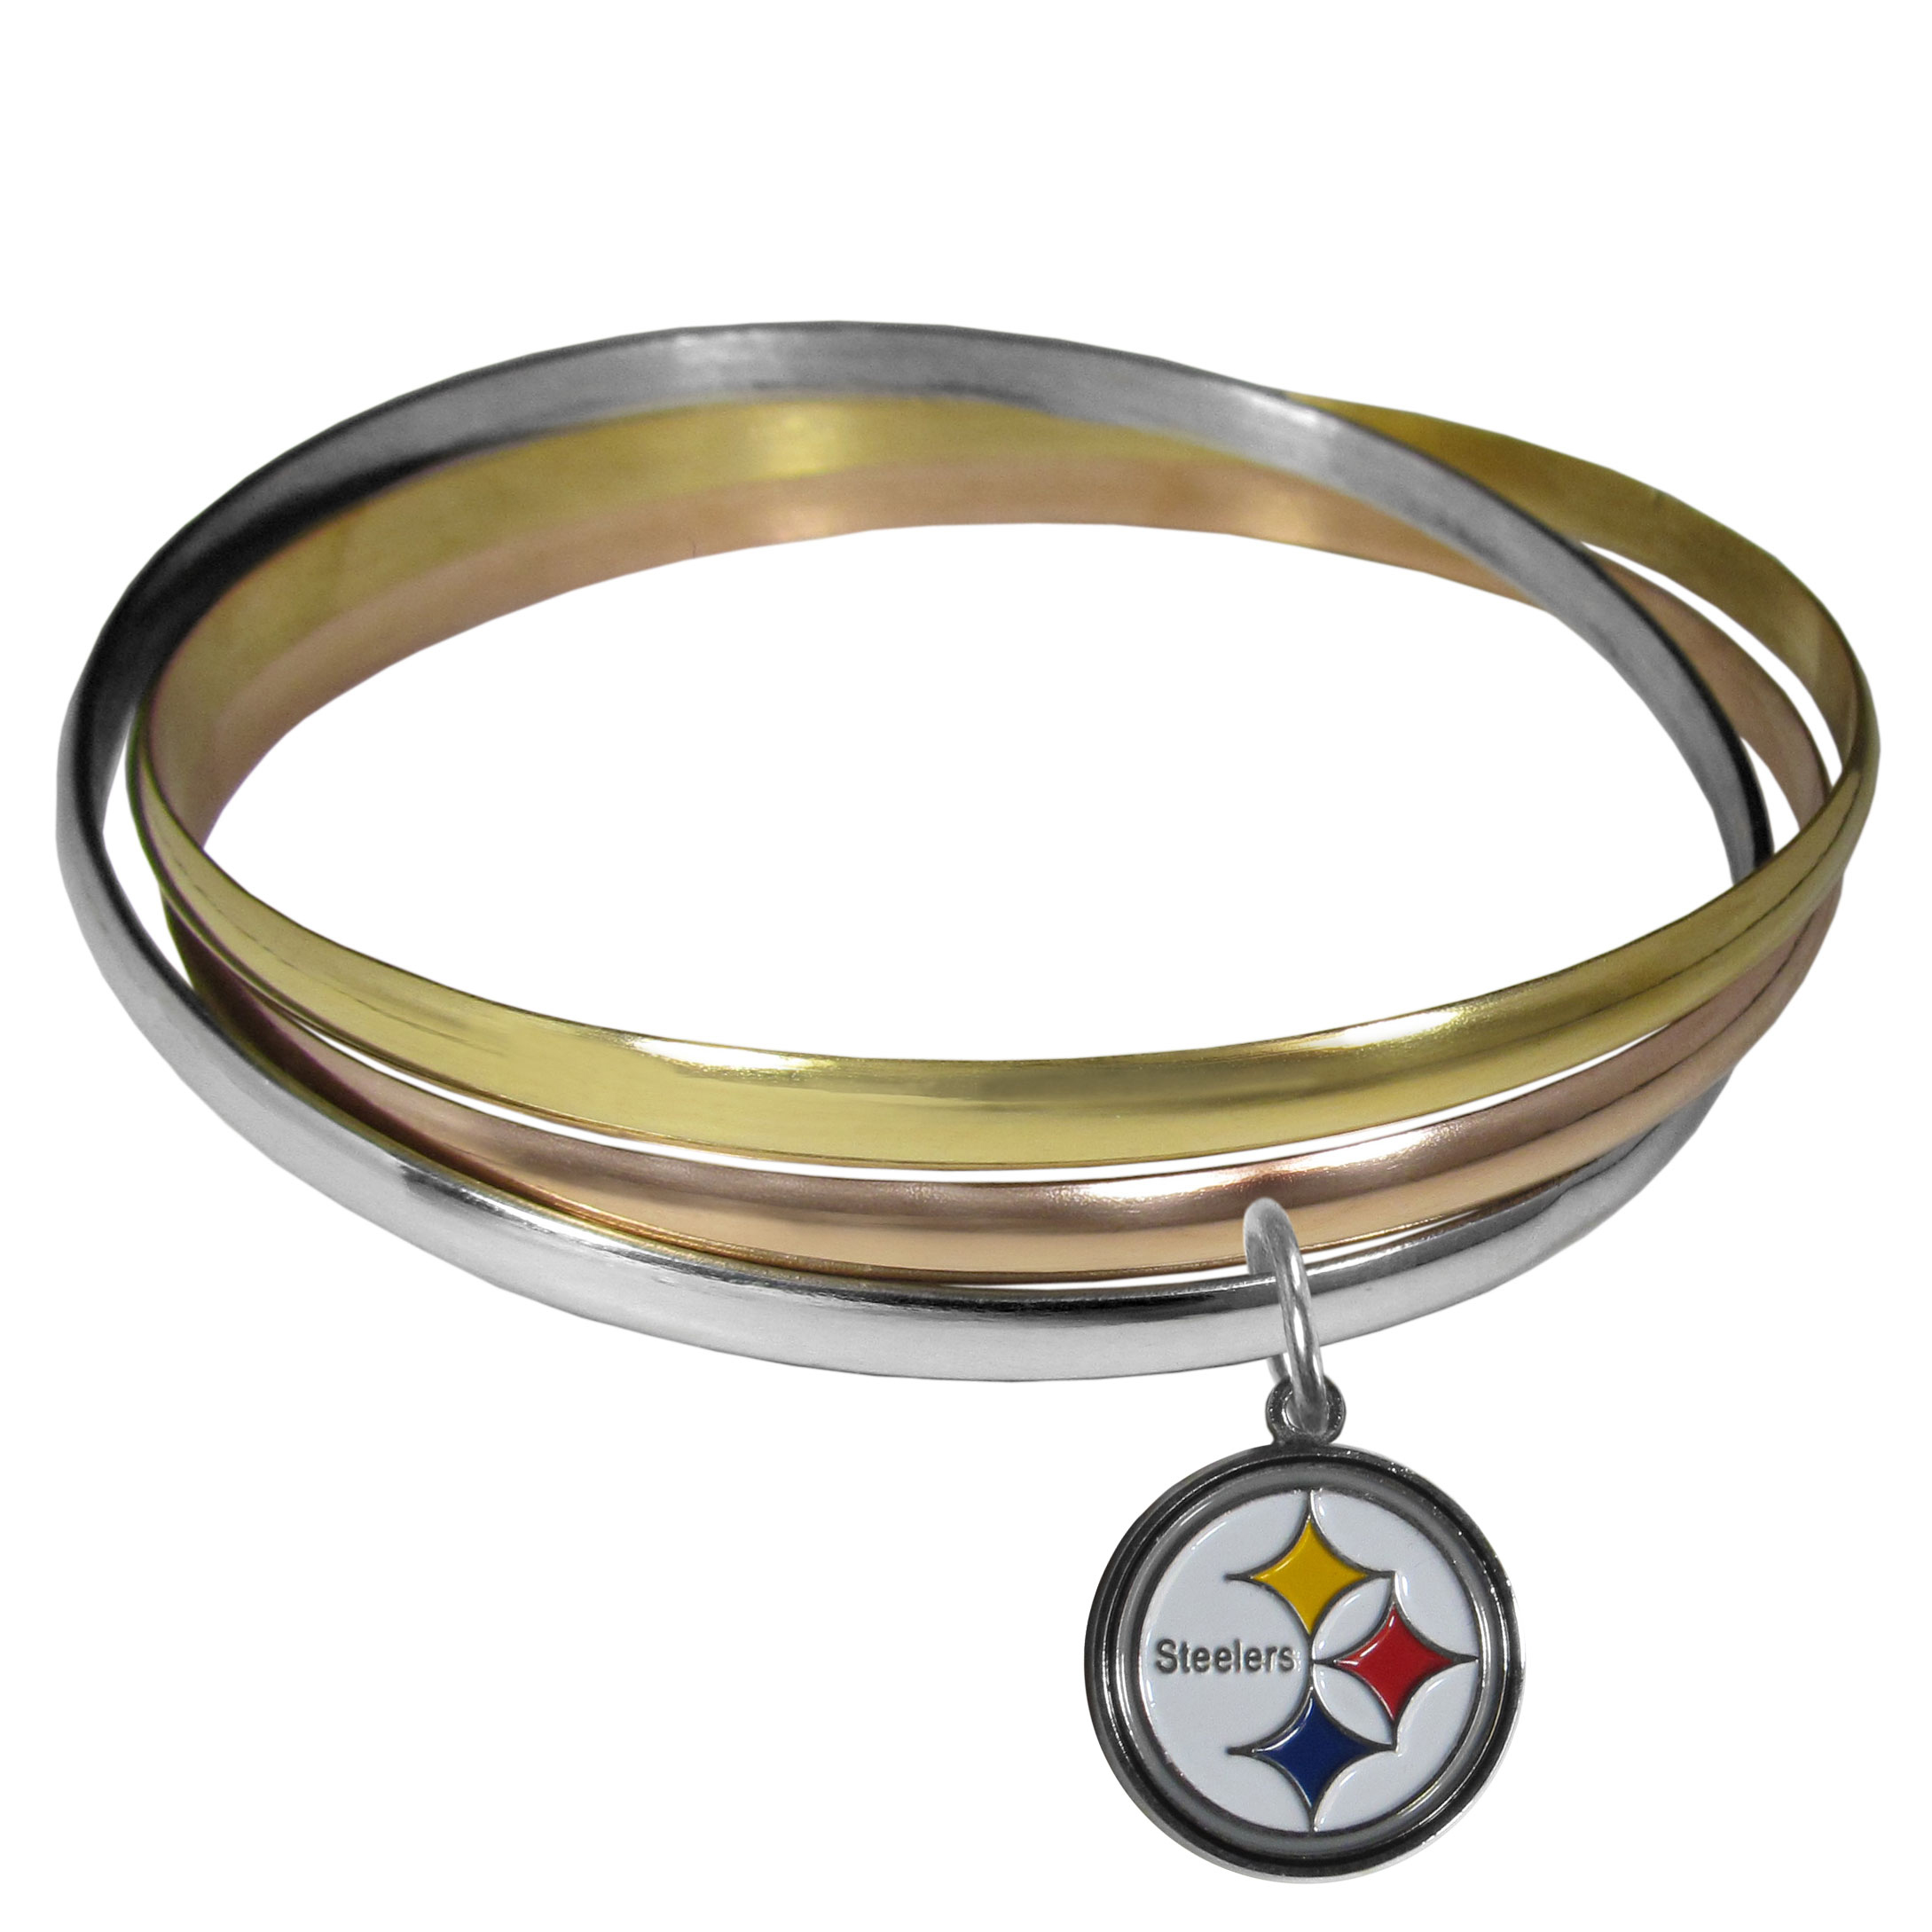 Pittsburgh Steelers Tri-color Bangle Bracelet - These beautiful bangles come in a interlocking style and feature a fully cast Pittsburgh Steelers charm with enameled team colors. The bracelet has a silver toned bangle, gold tone bangle and brass toned bangle.